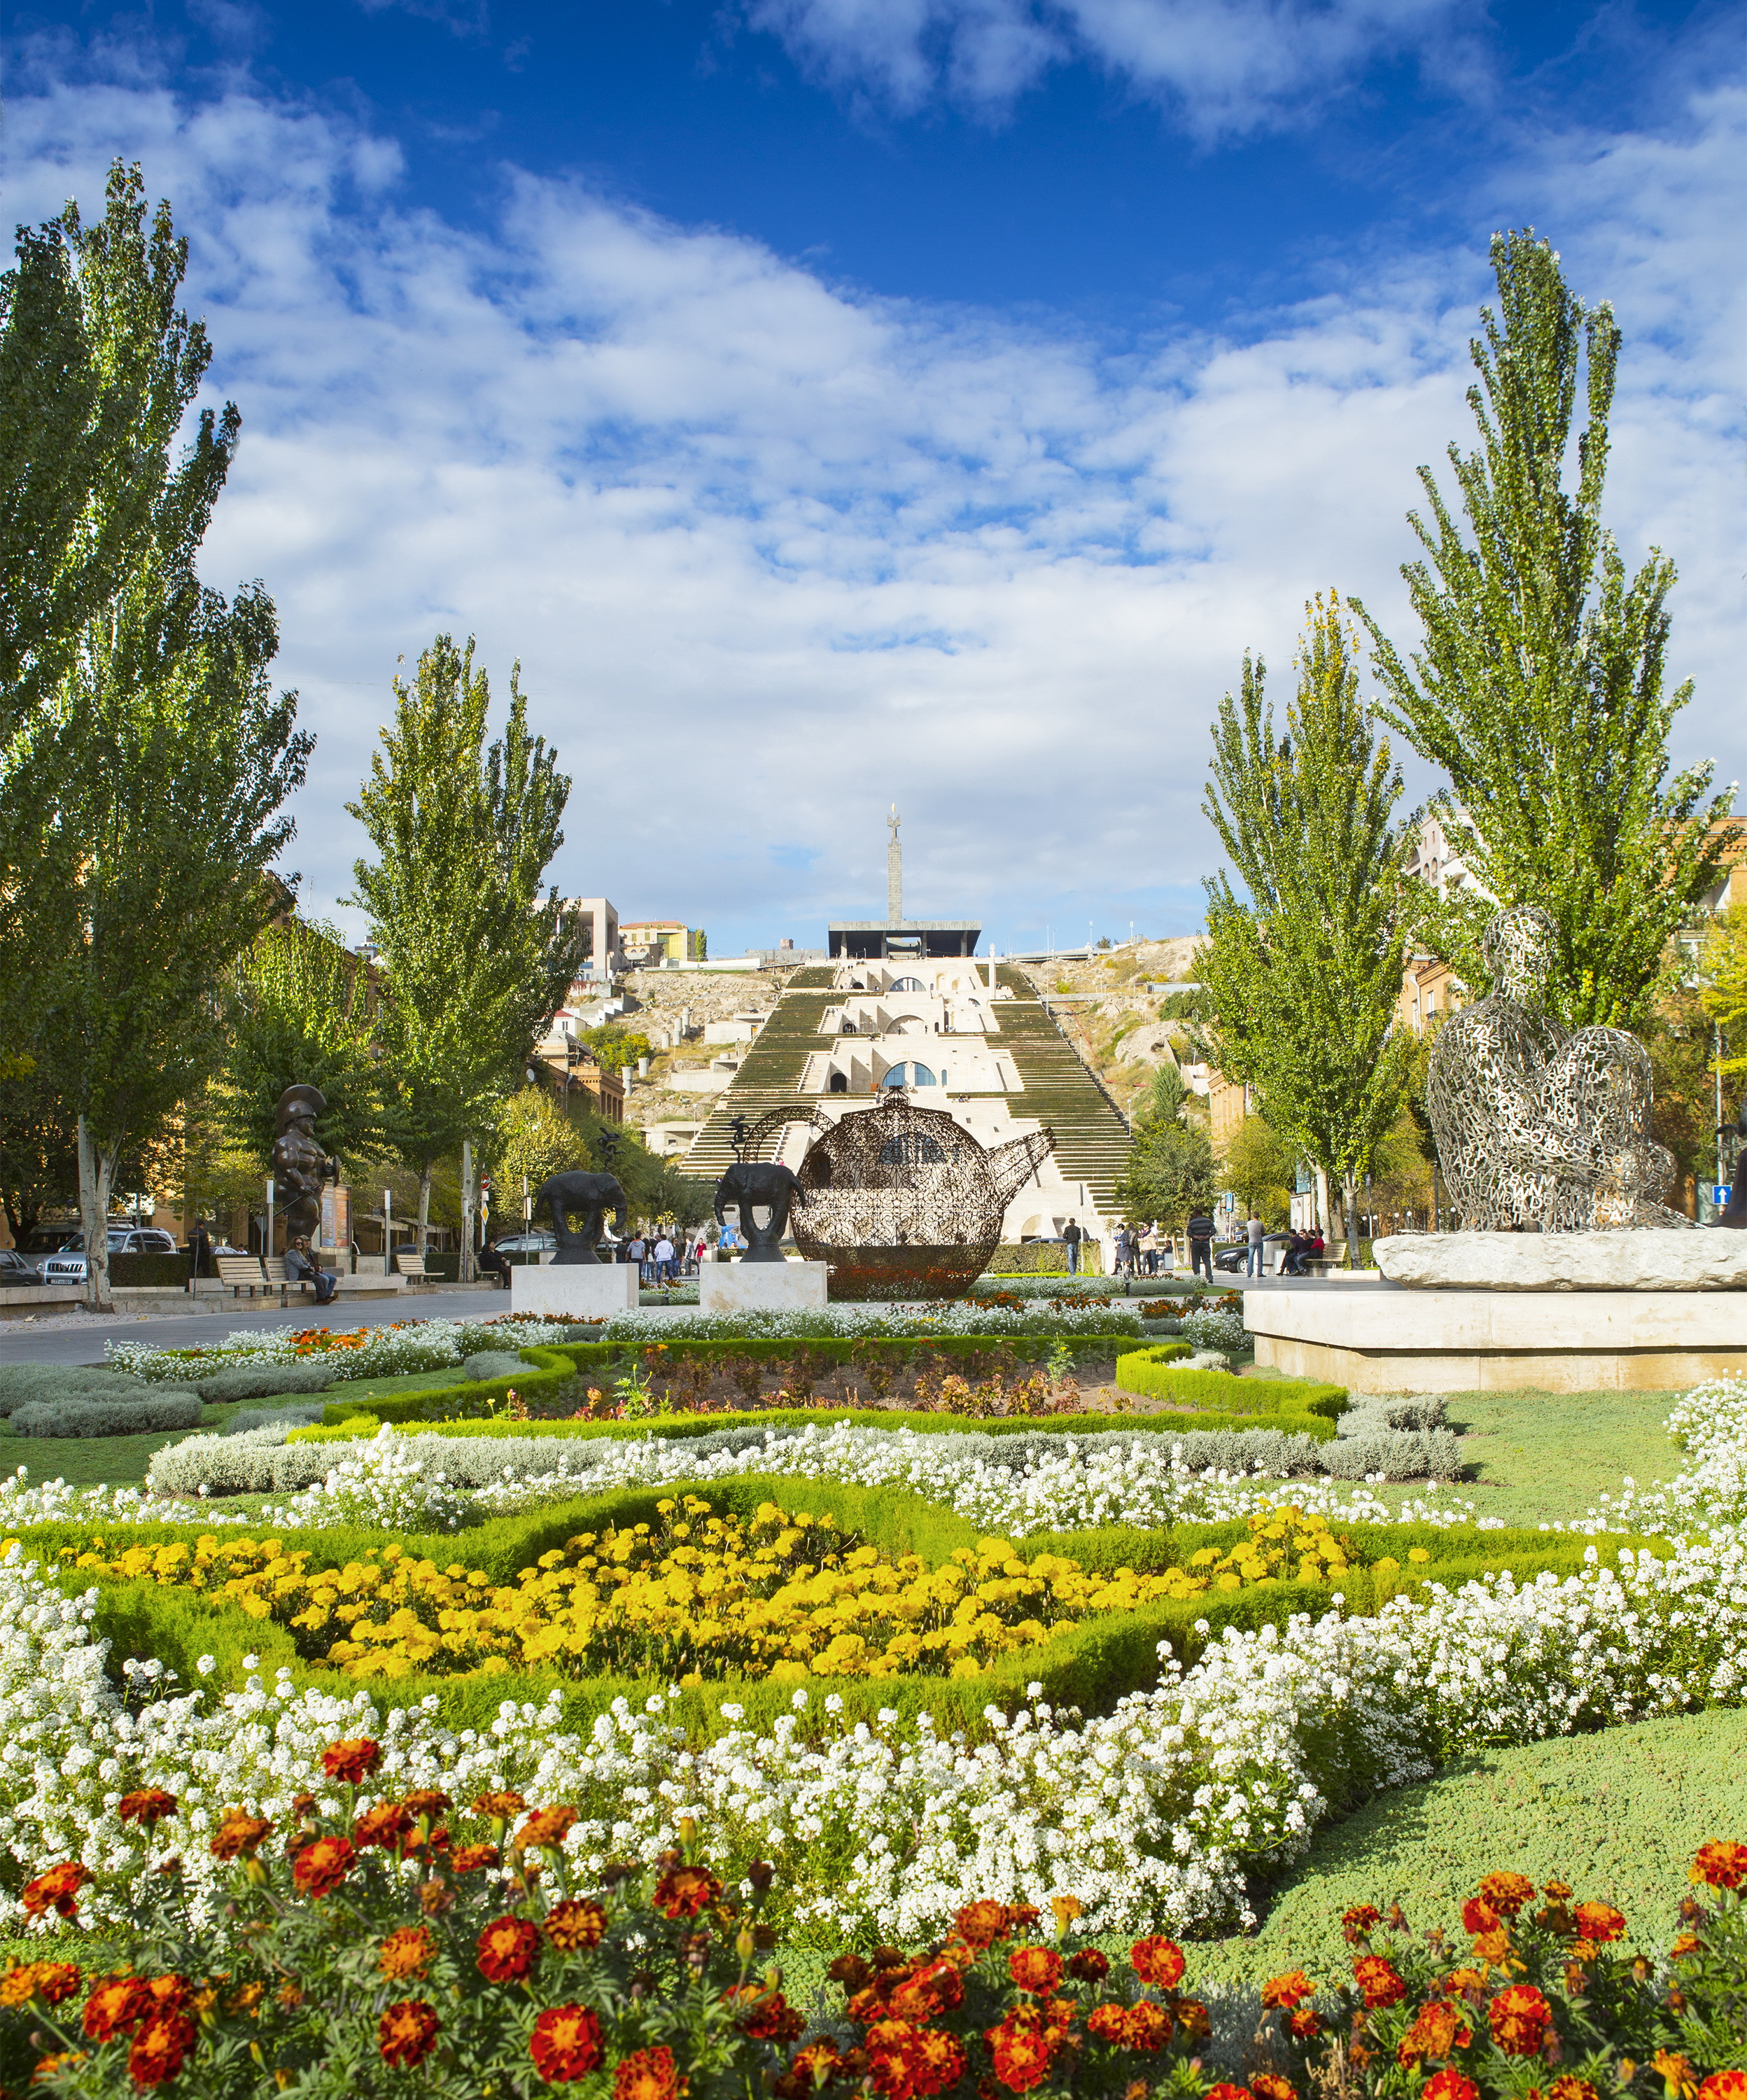 https://armeniaholidays.com/wp-content/uploads/2019/12/1-1.jpg